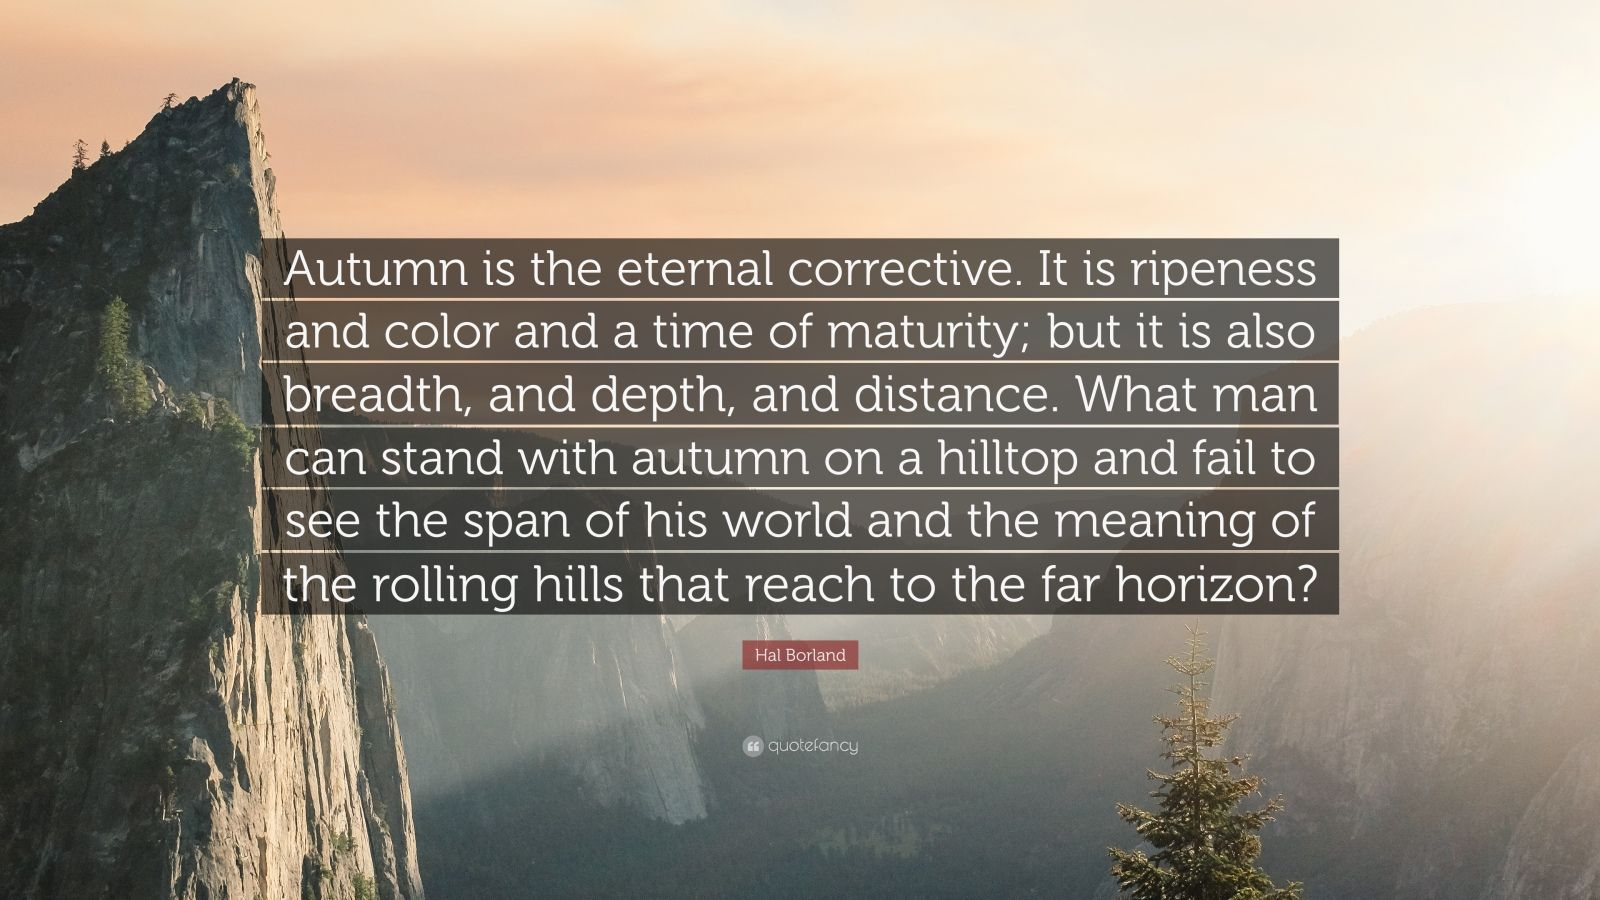 """Hal Borland Quote: """"Autumn is the eternal corrective. It is ripeness and color and a time of maturity; but it is also breadth, and depth, and distance. What man can stand with autumn on a hilltop and fail to see the span of his world and the meaning of the rolling hills that reach to the far horizon?"""""""